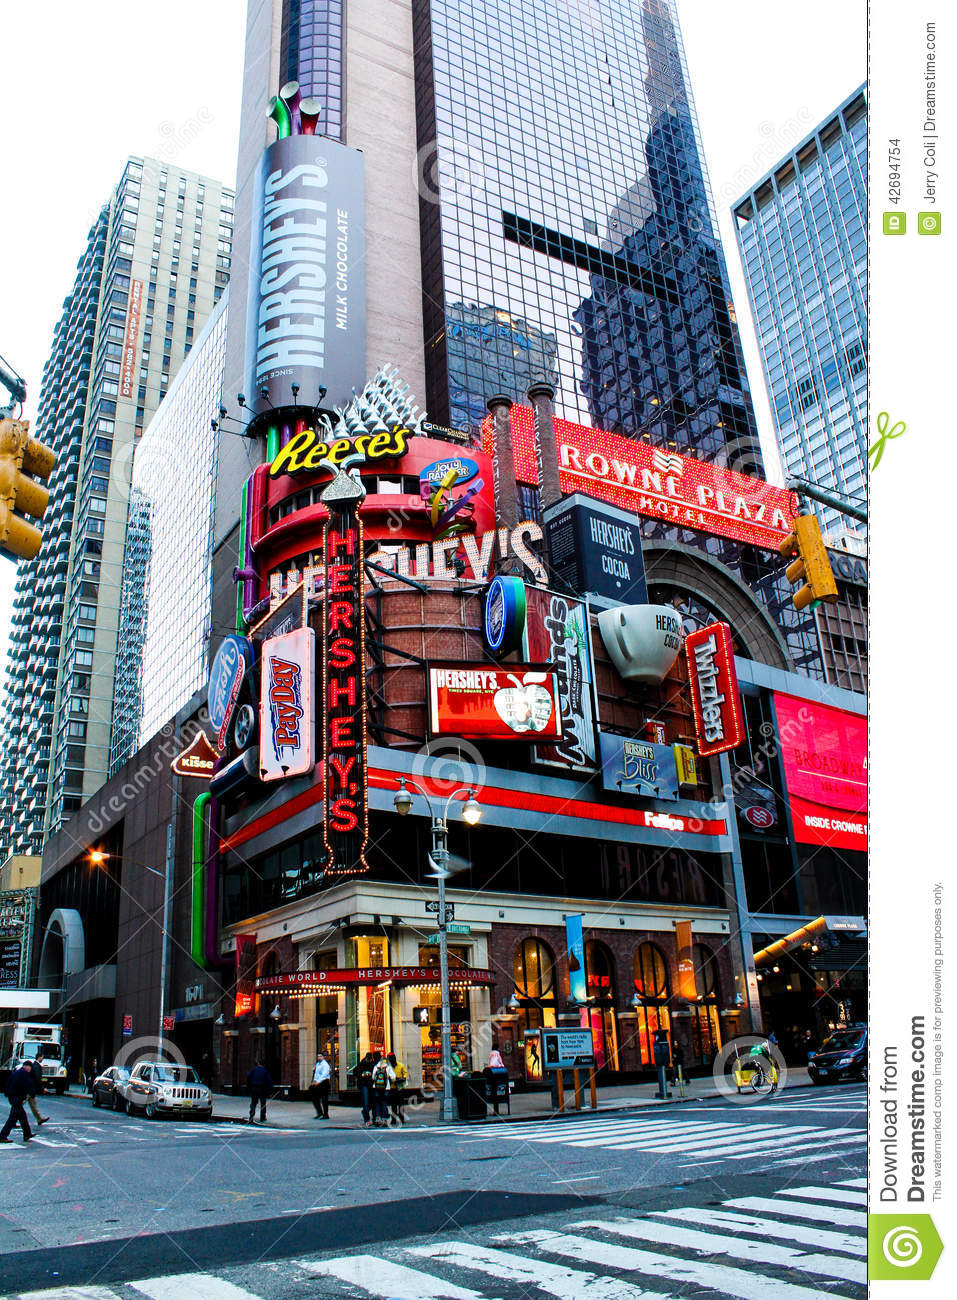 Hershey 39 s candy store manhattan nyc editorial stock for What to do around times square